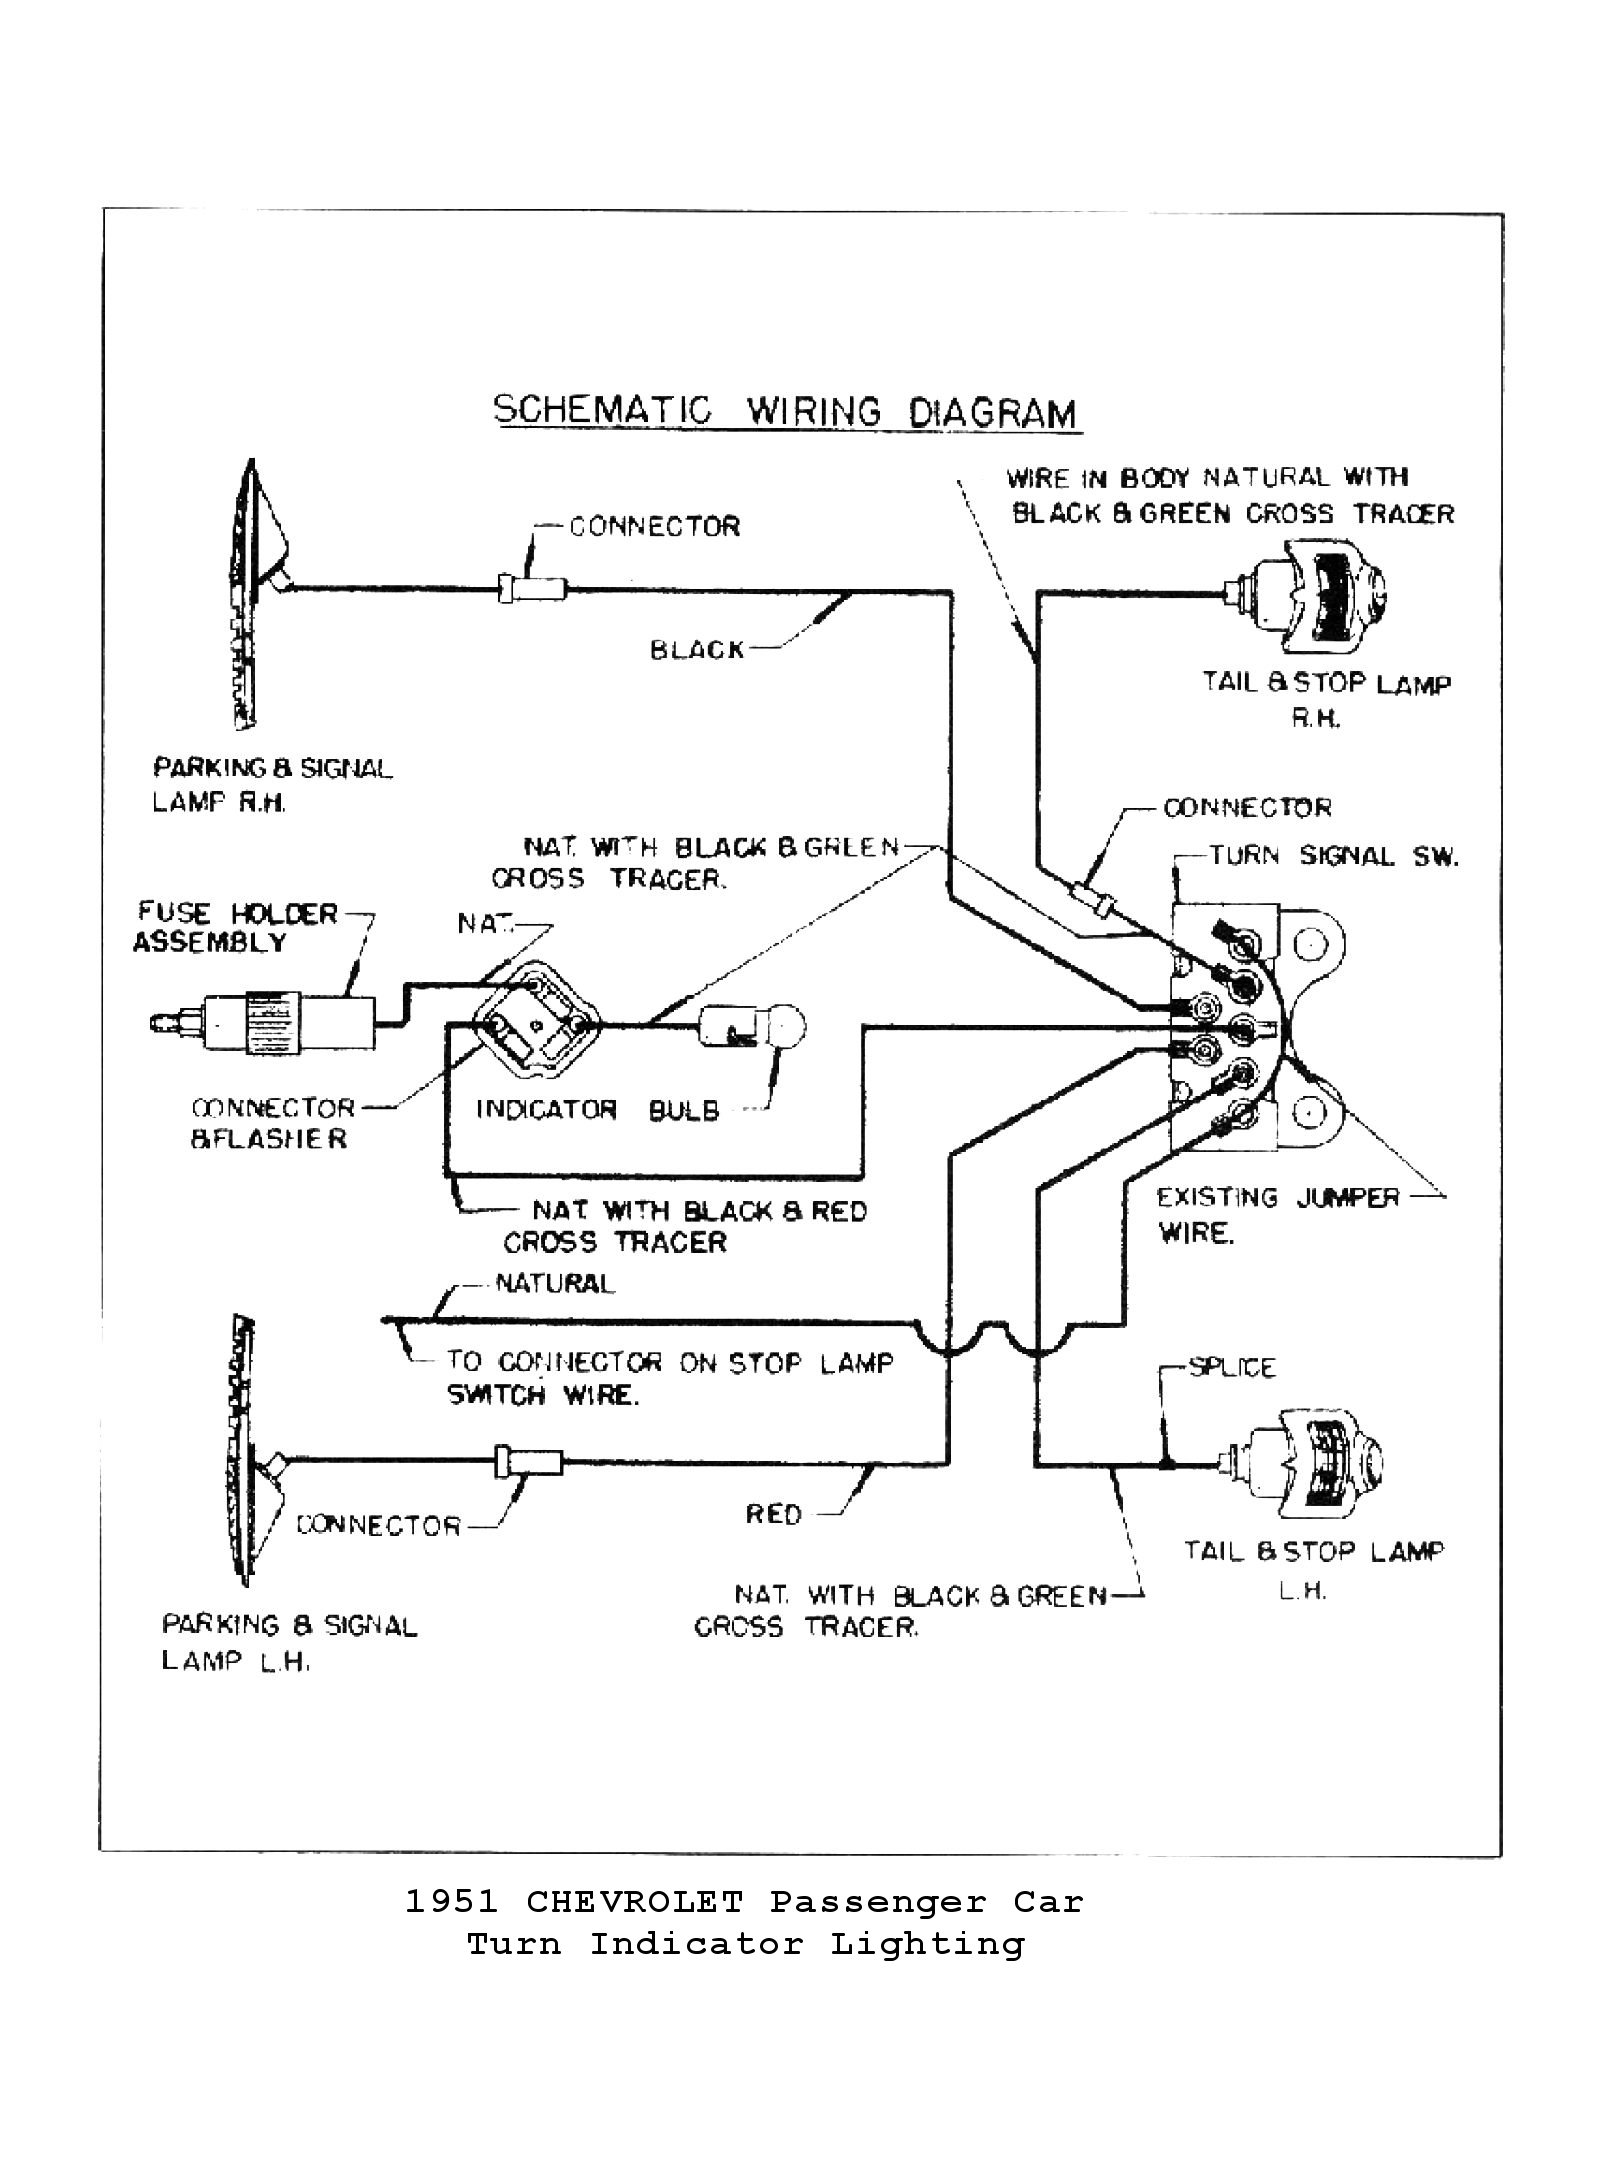 1972 Chevy Truck Ignition Switch Wiring Diagram : chevy, truck, ignition, switch, wiring, diagram, Chevy, Ignition, Switch, Wiring, Starter, Diagram